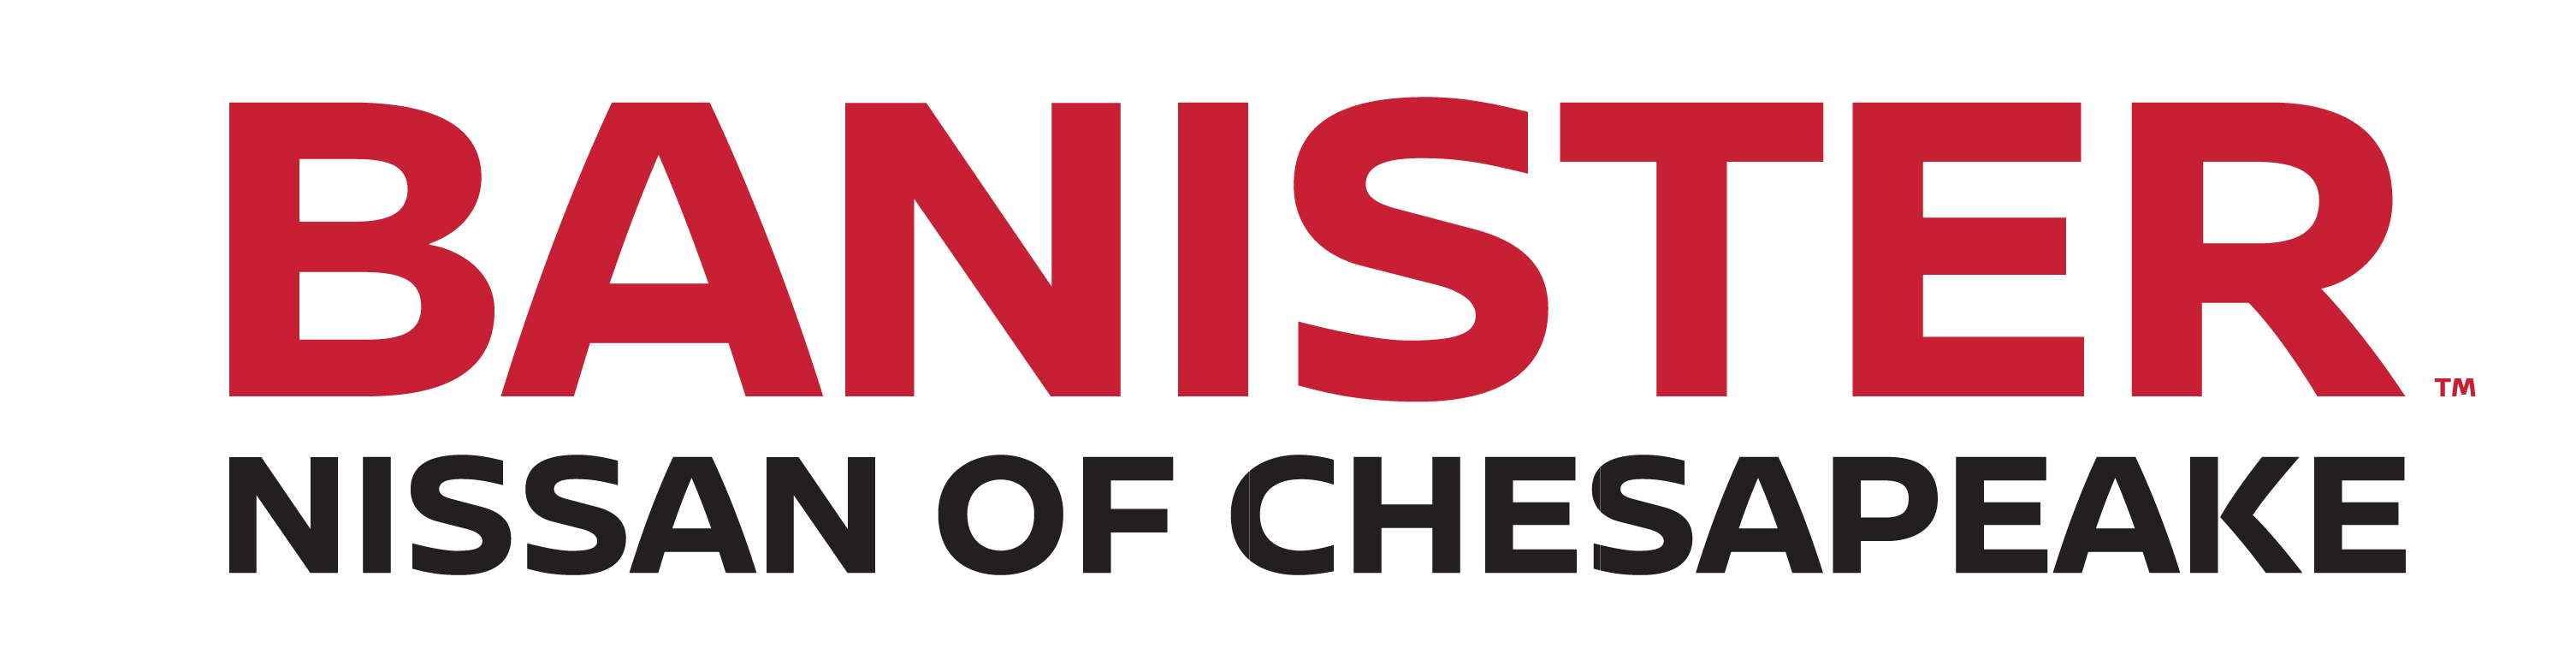 Banister Nissan of Chesapeake logo